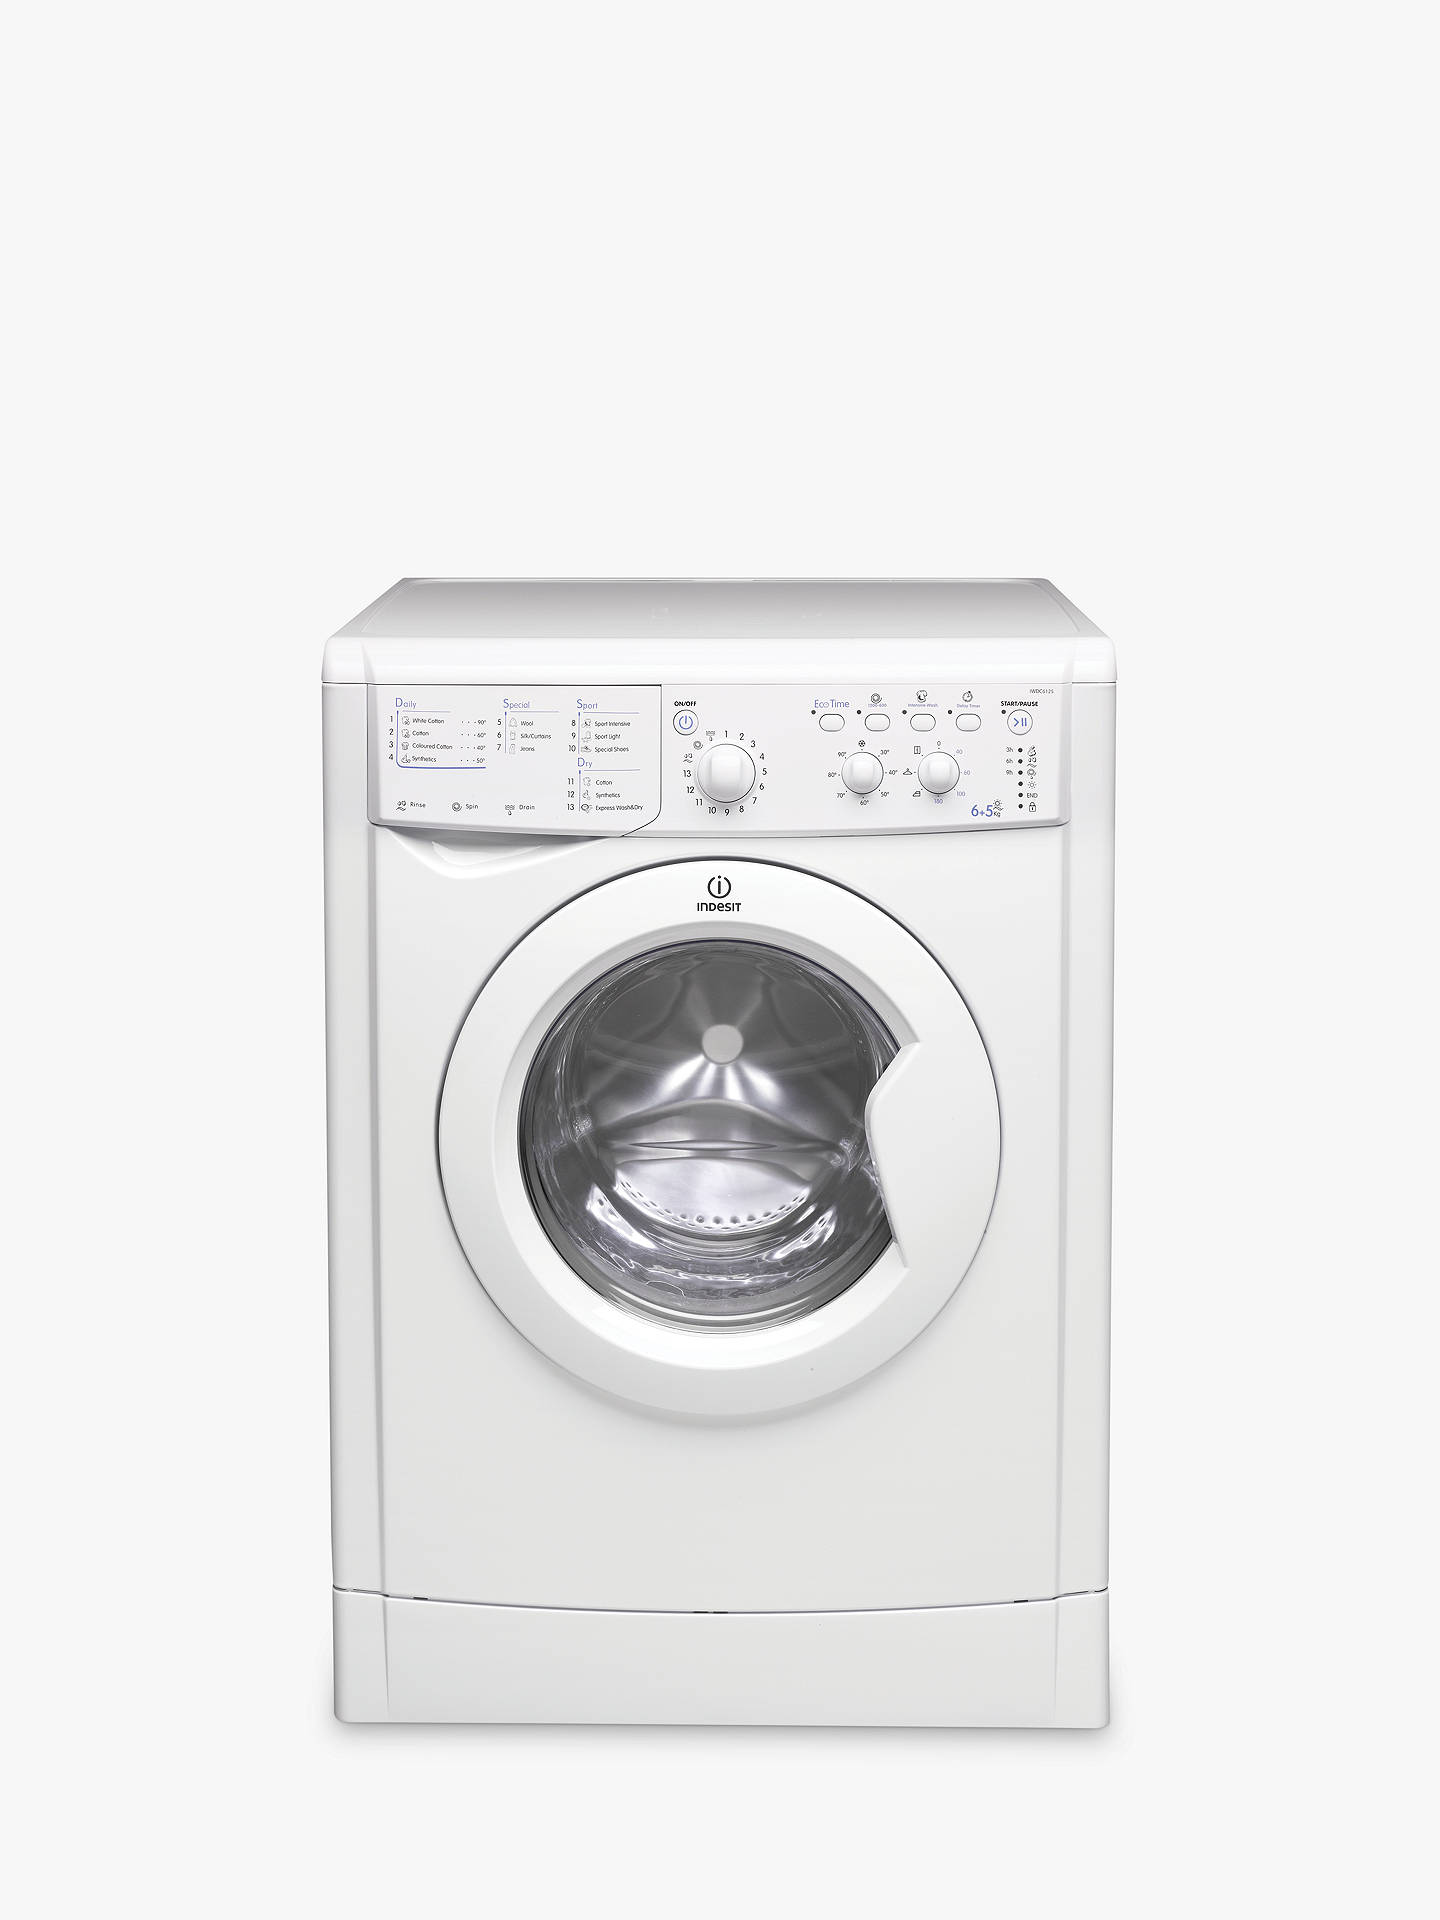 Indesit IWDC6125 Ecotime Washer Dryer, 6kg Wash/5kg Dry Load, B Energy Rating, 1200rpm Spin, White